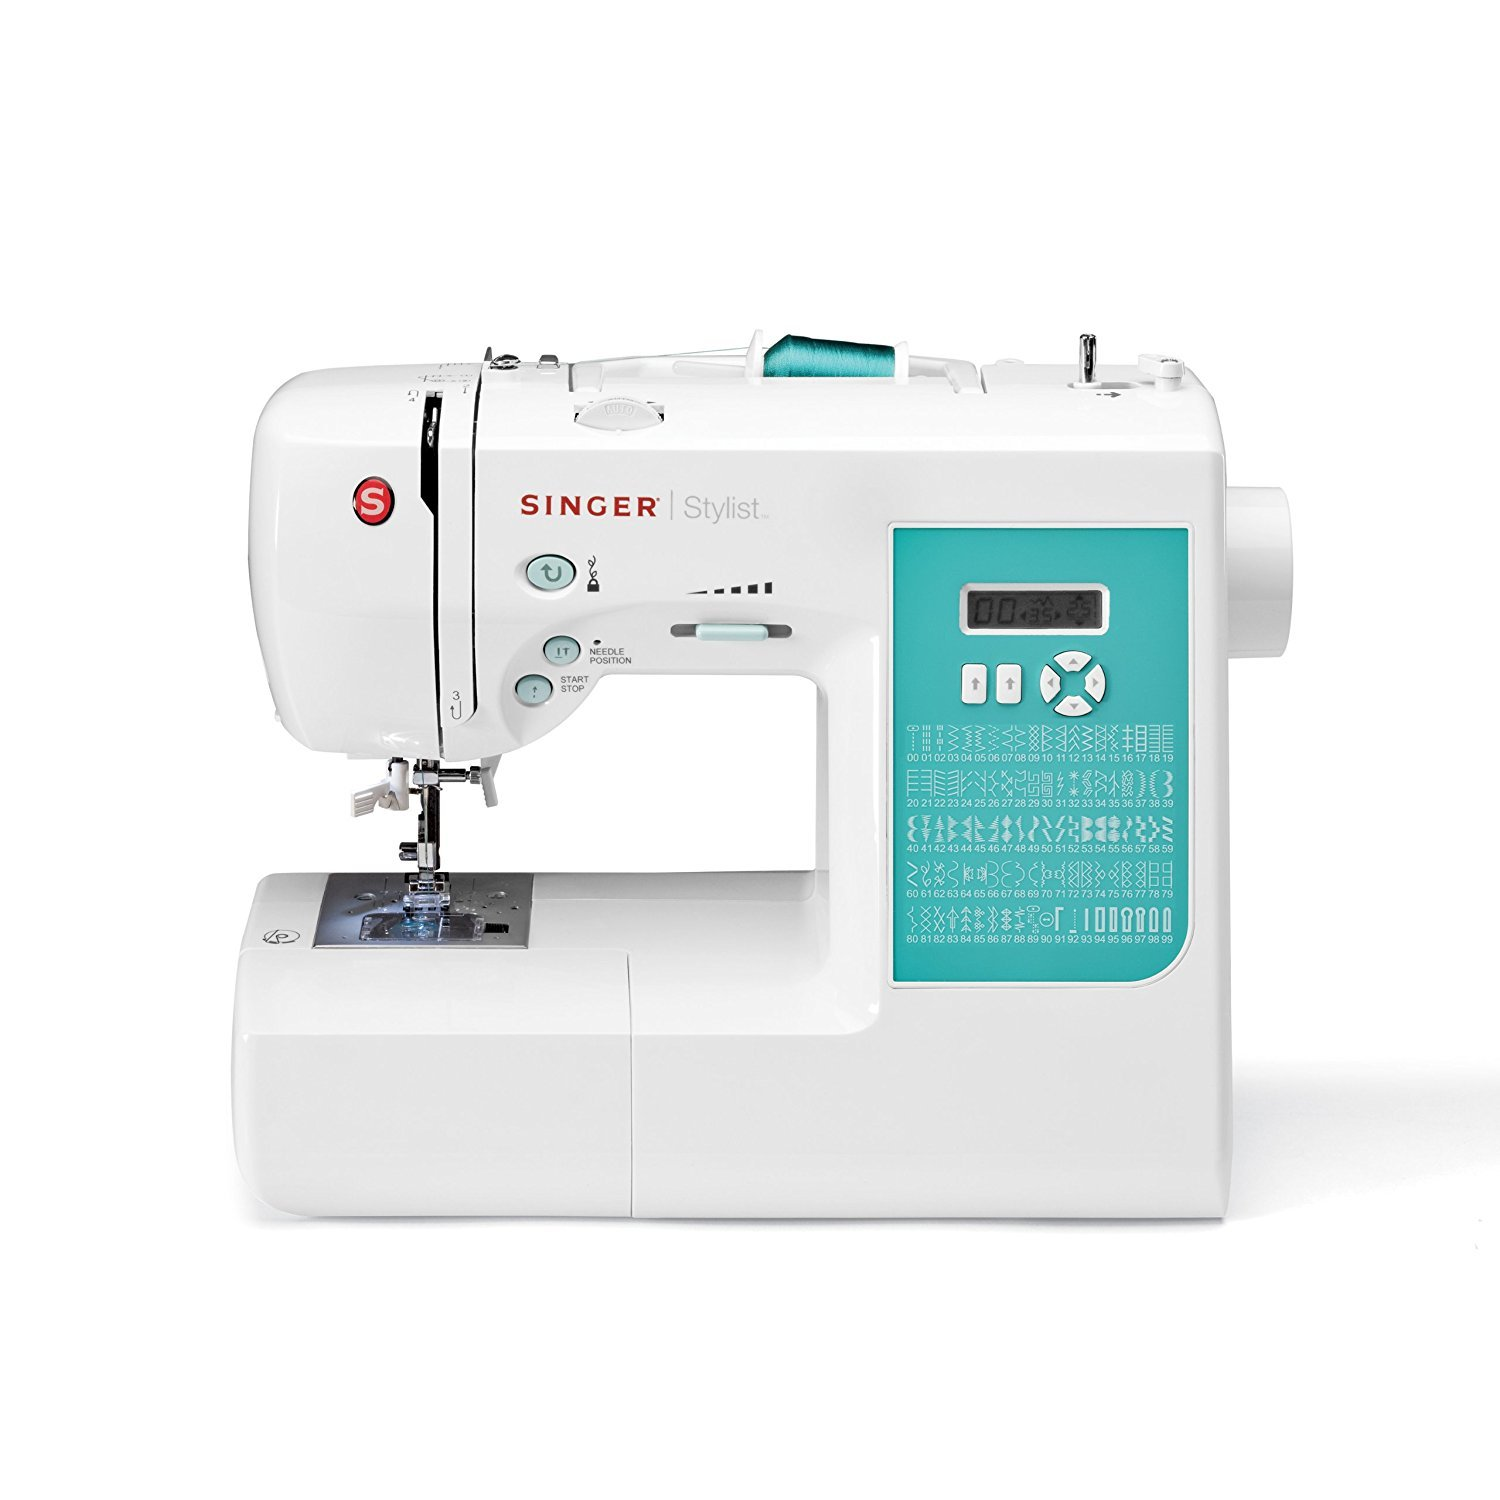 Singer | 7258 100-Stitch Computerized Sewing Machine with 76 Decorative Stitches, Automatic Needle Threader and Bonus Accessories, Packed with Features and Easy to Use